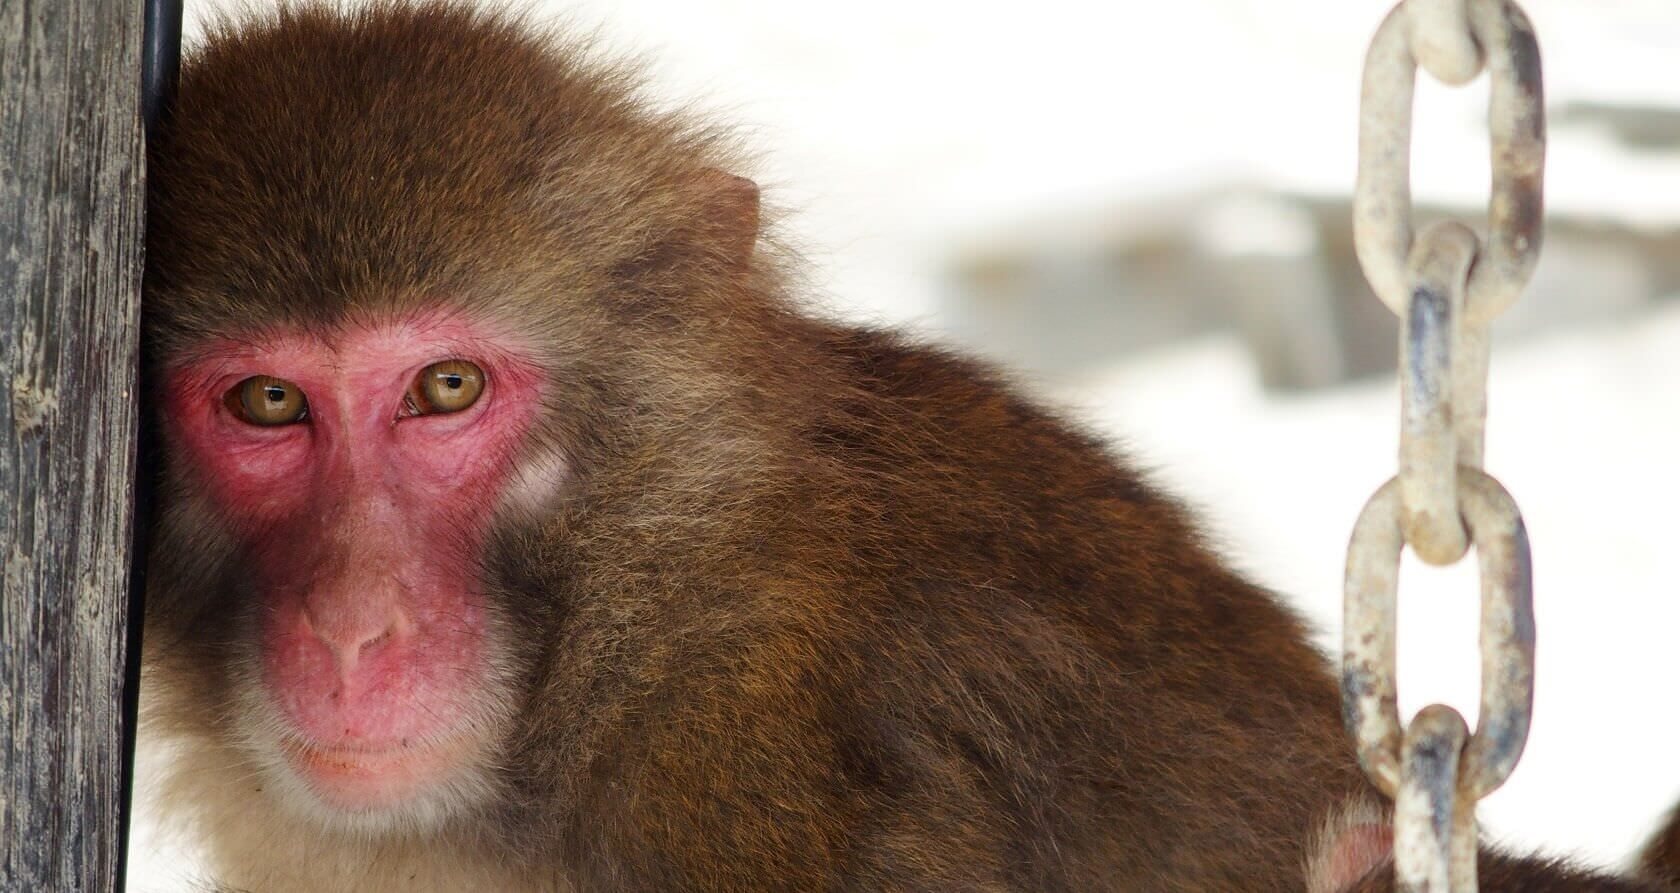 Adorable Snow Monkey